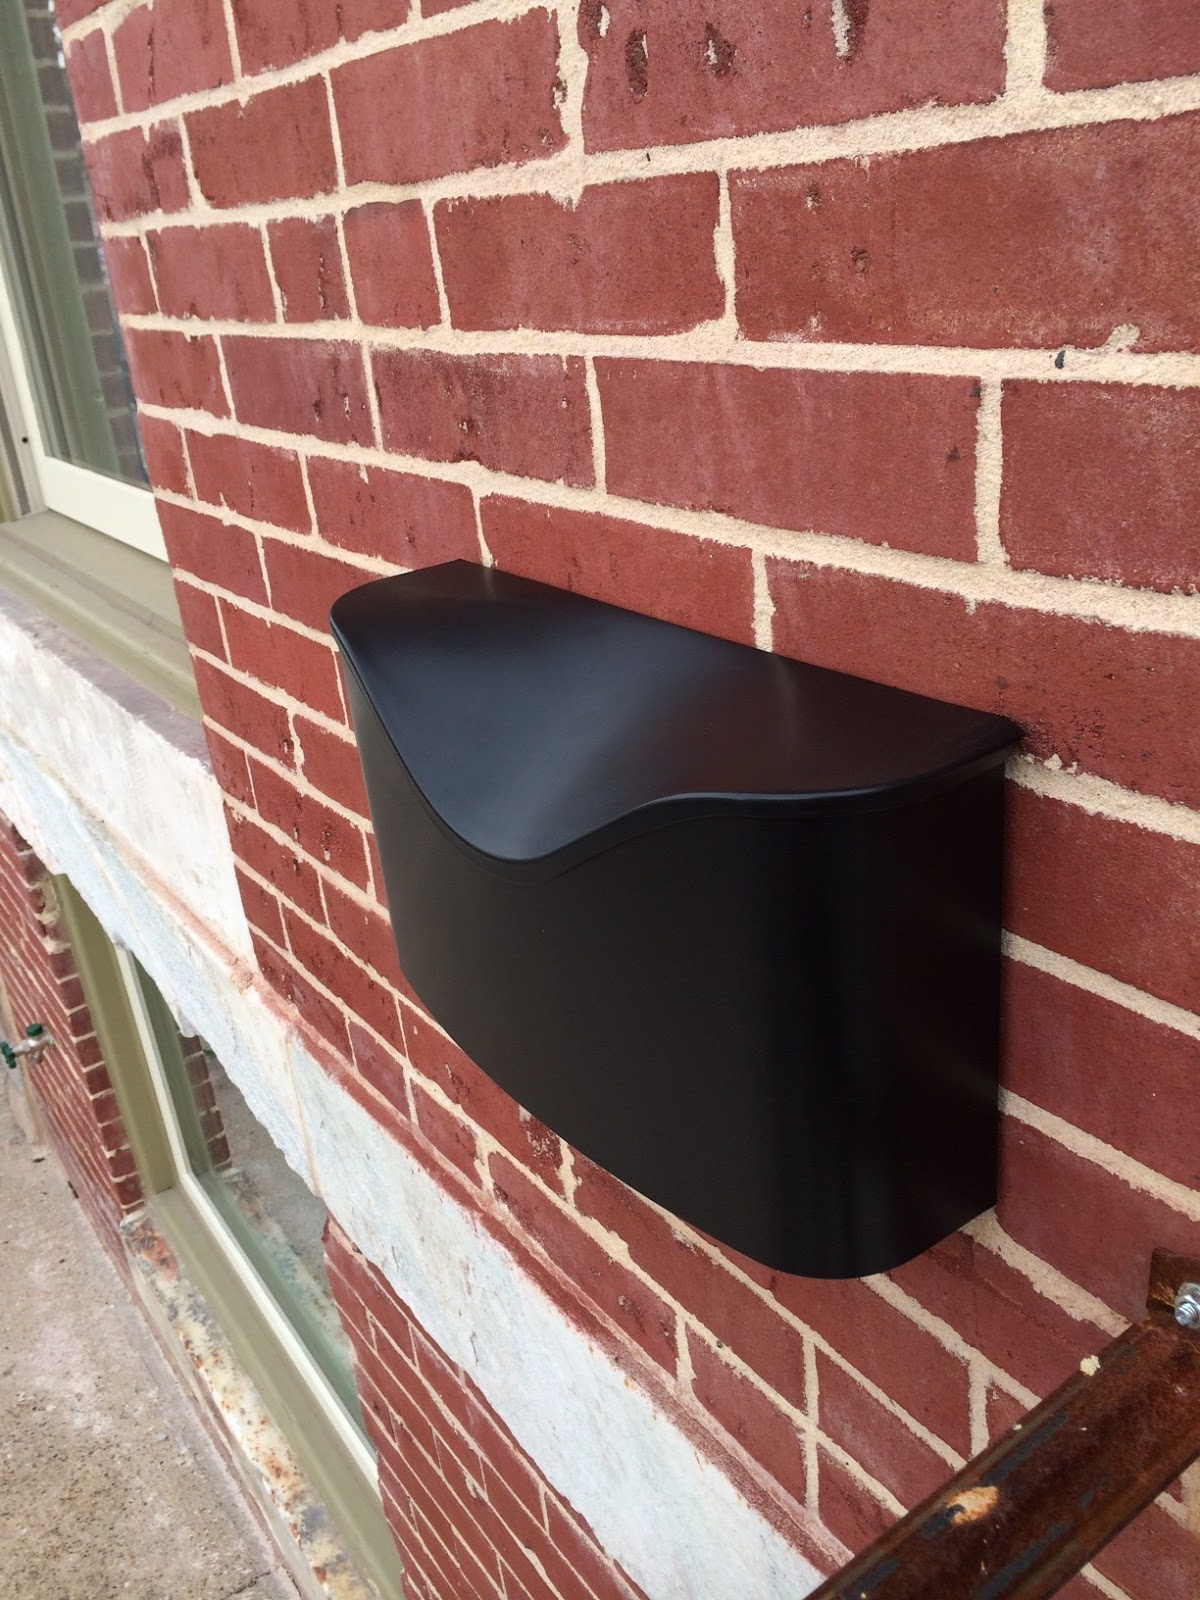 You Should Leave Enough Room Between The Head And Wall For Your Mailbox To Sit Comfortably But Ly